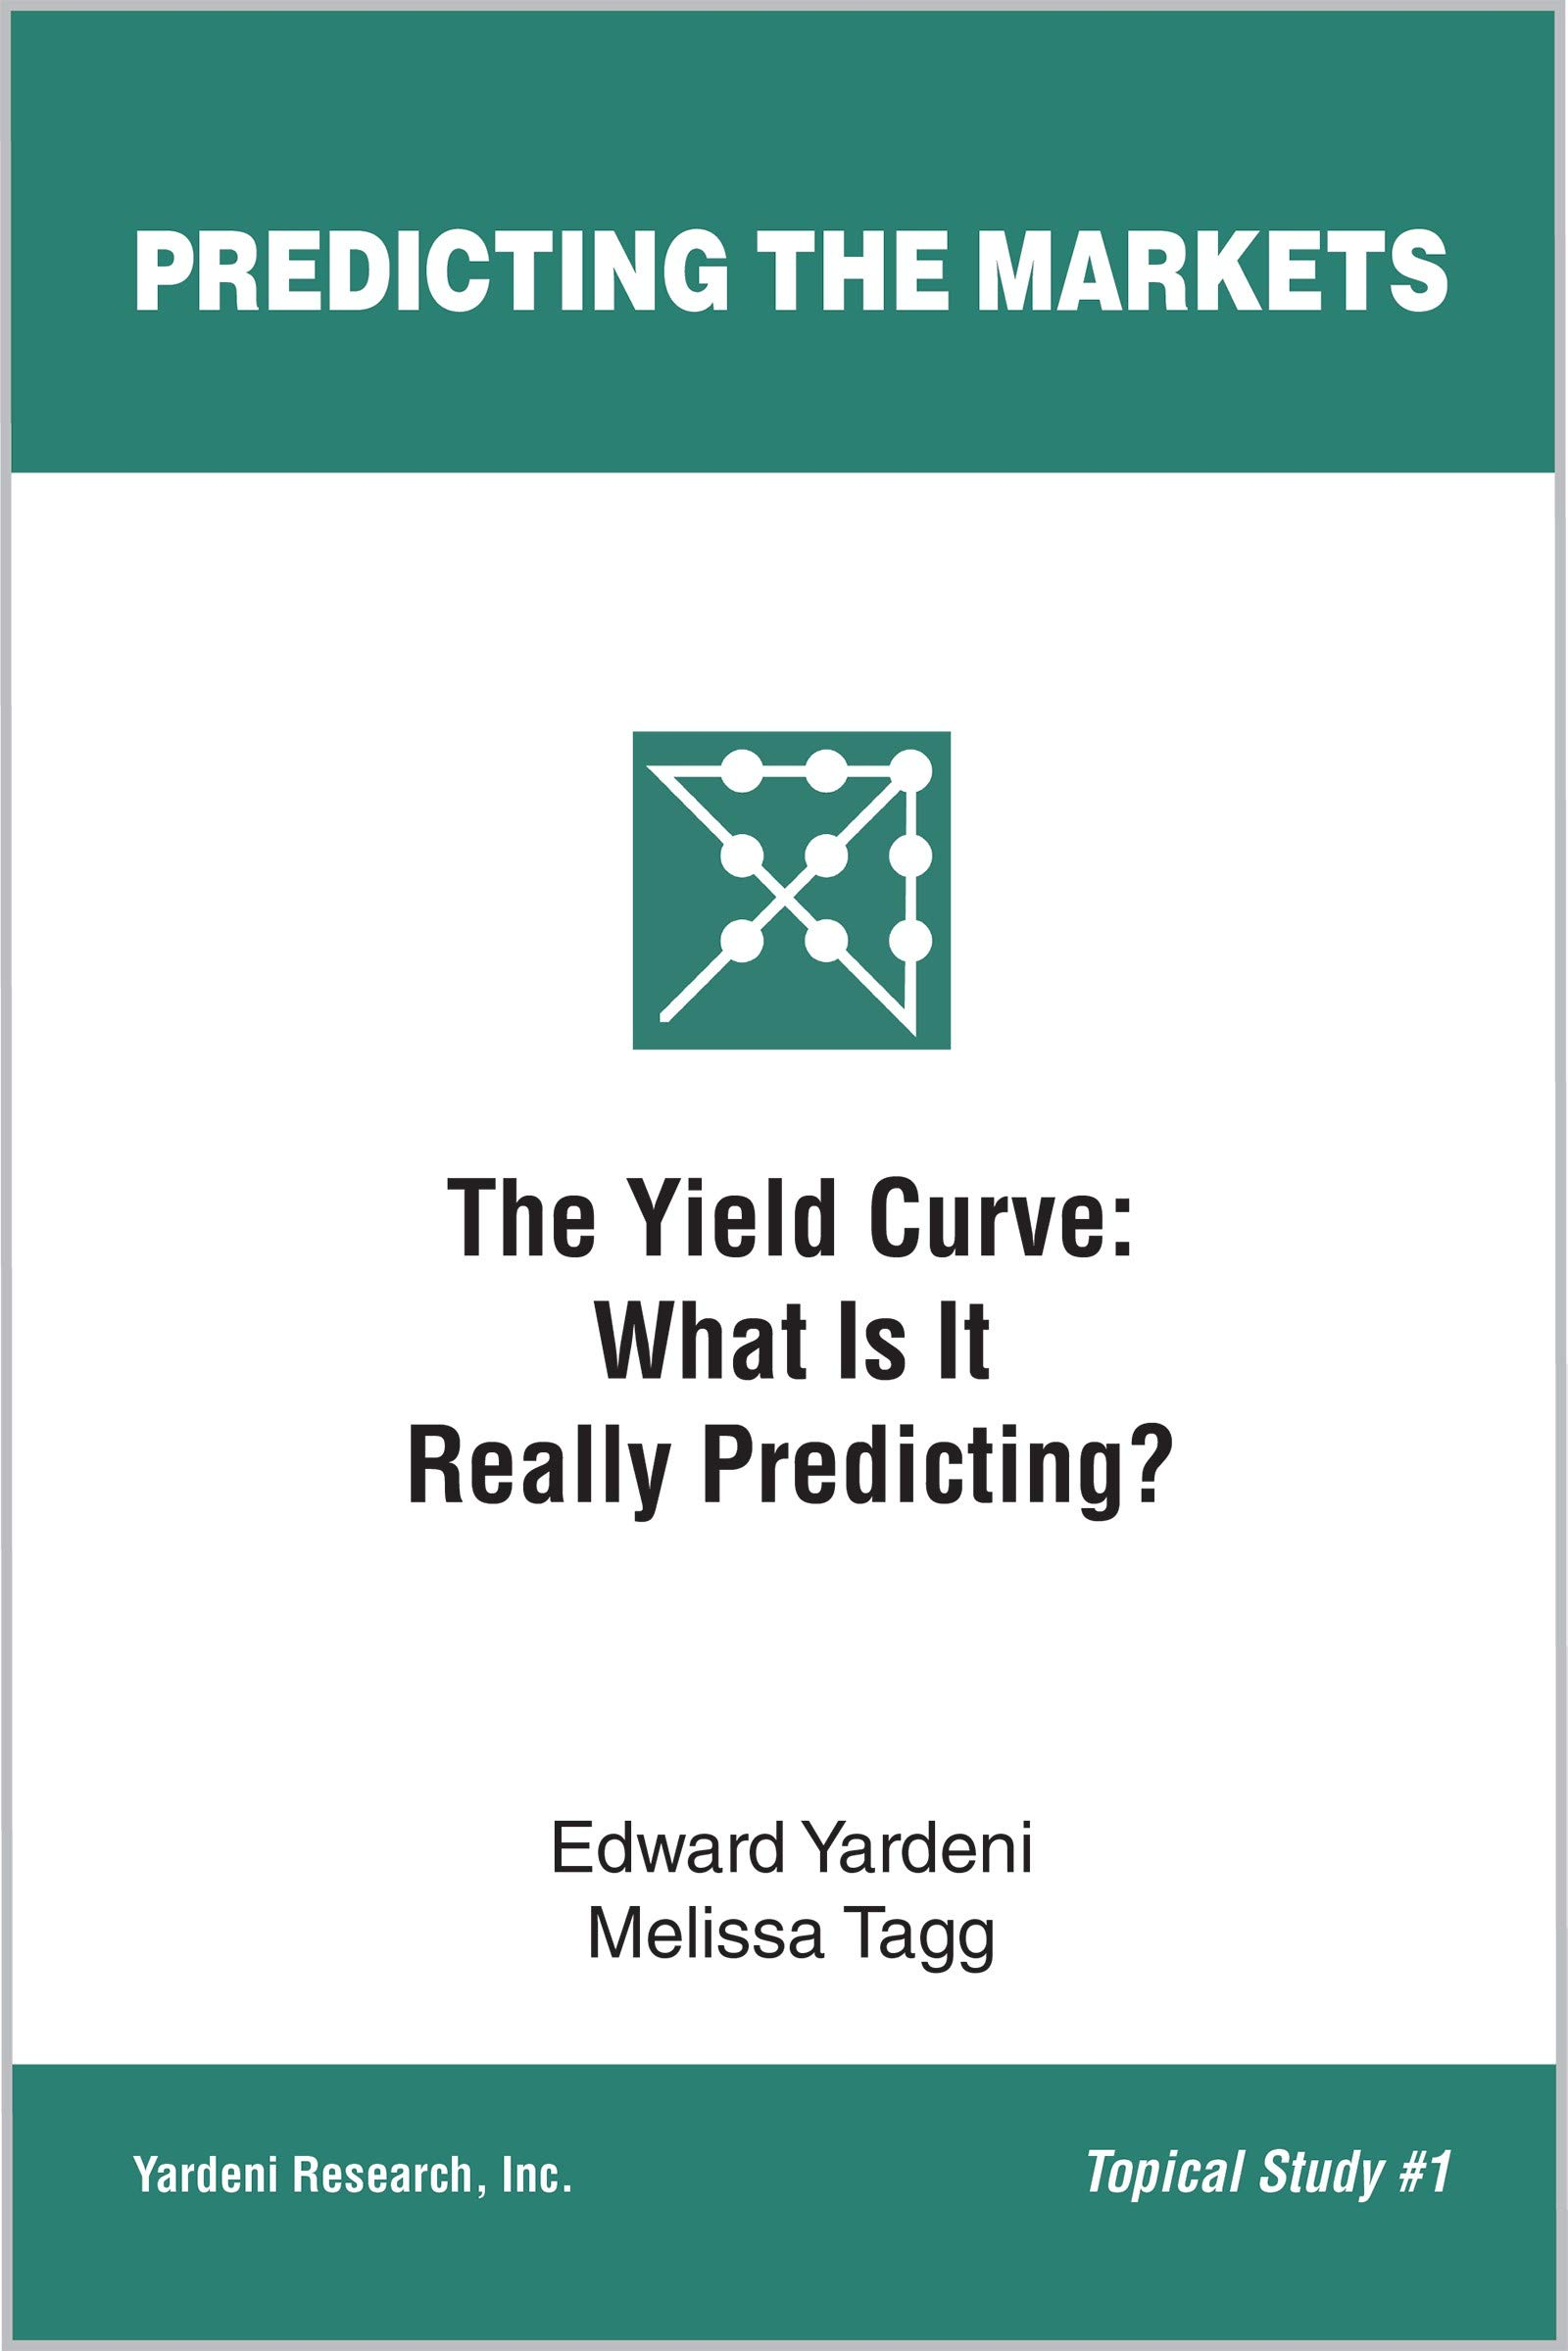 The Yield Curve: What Is It Really Predicting?